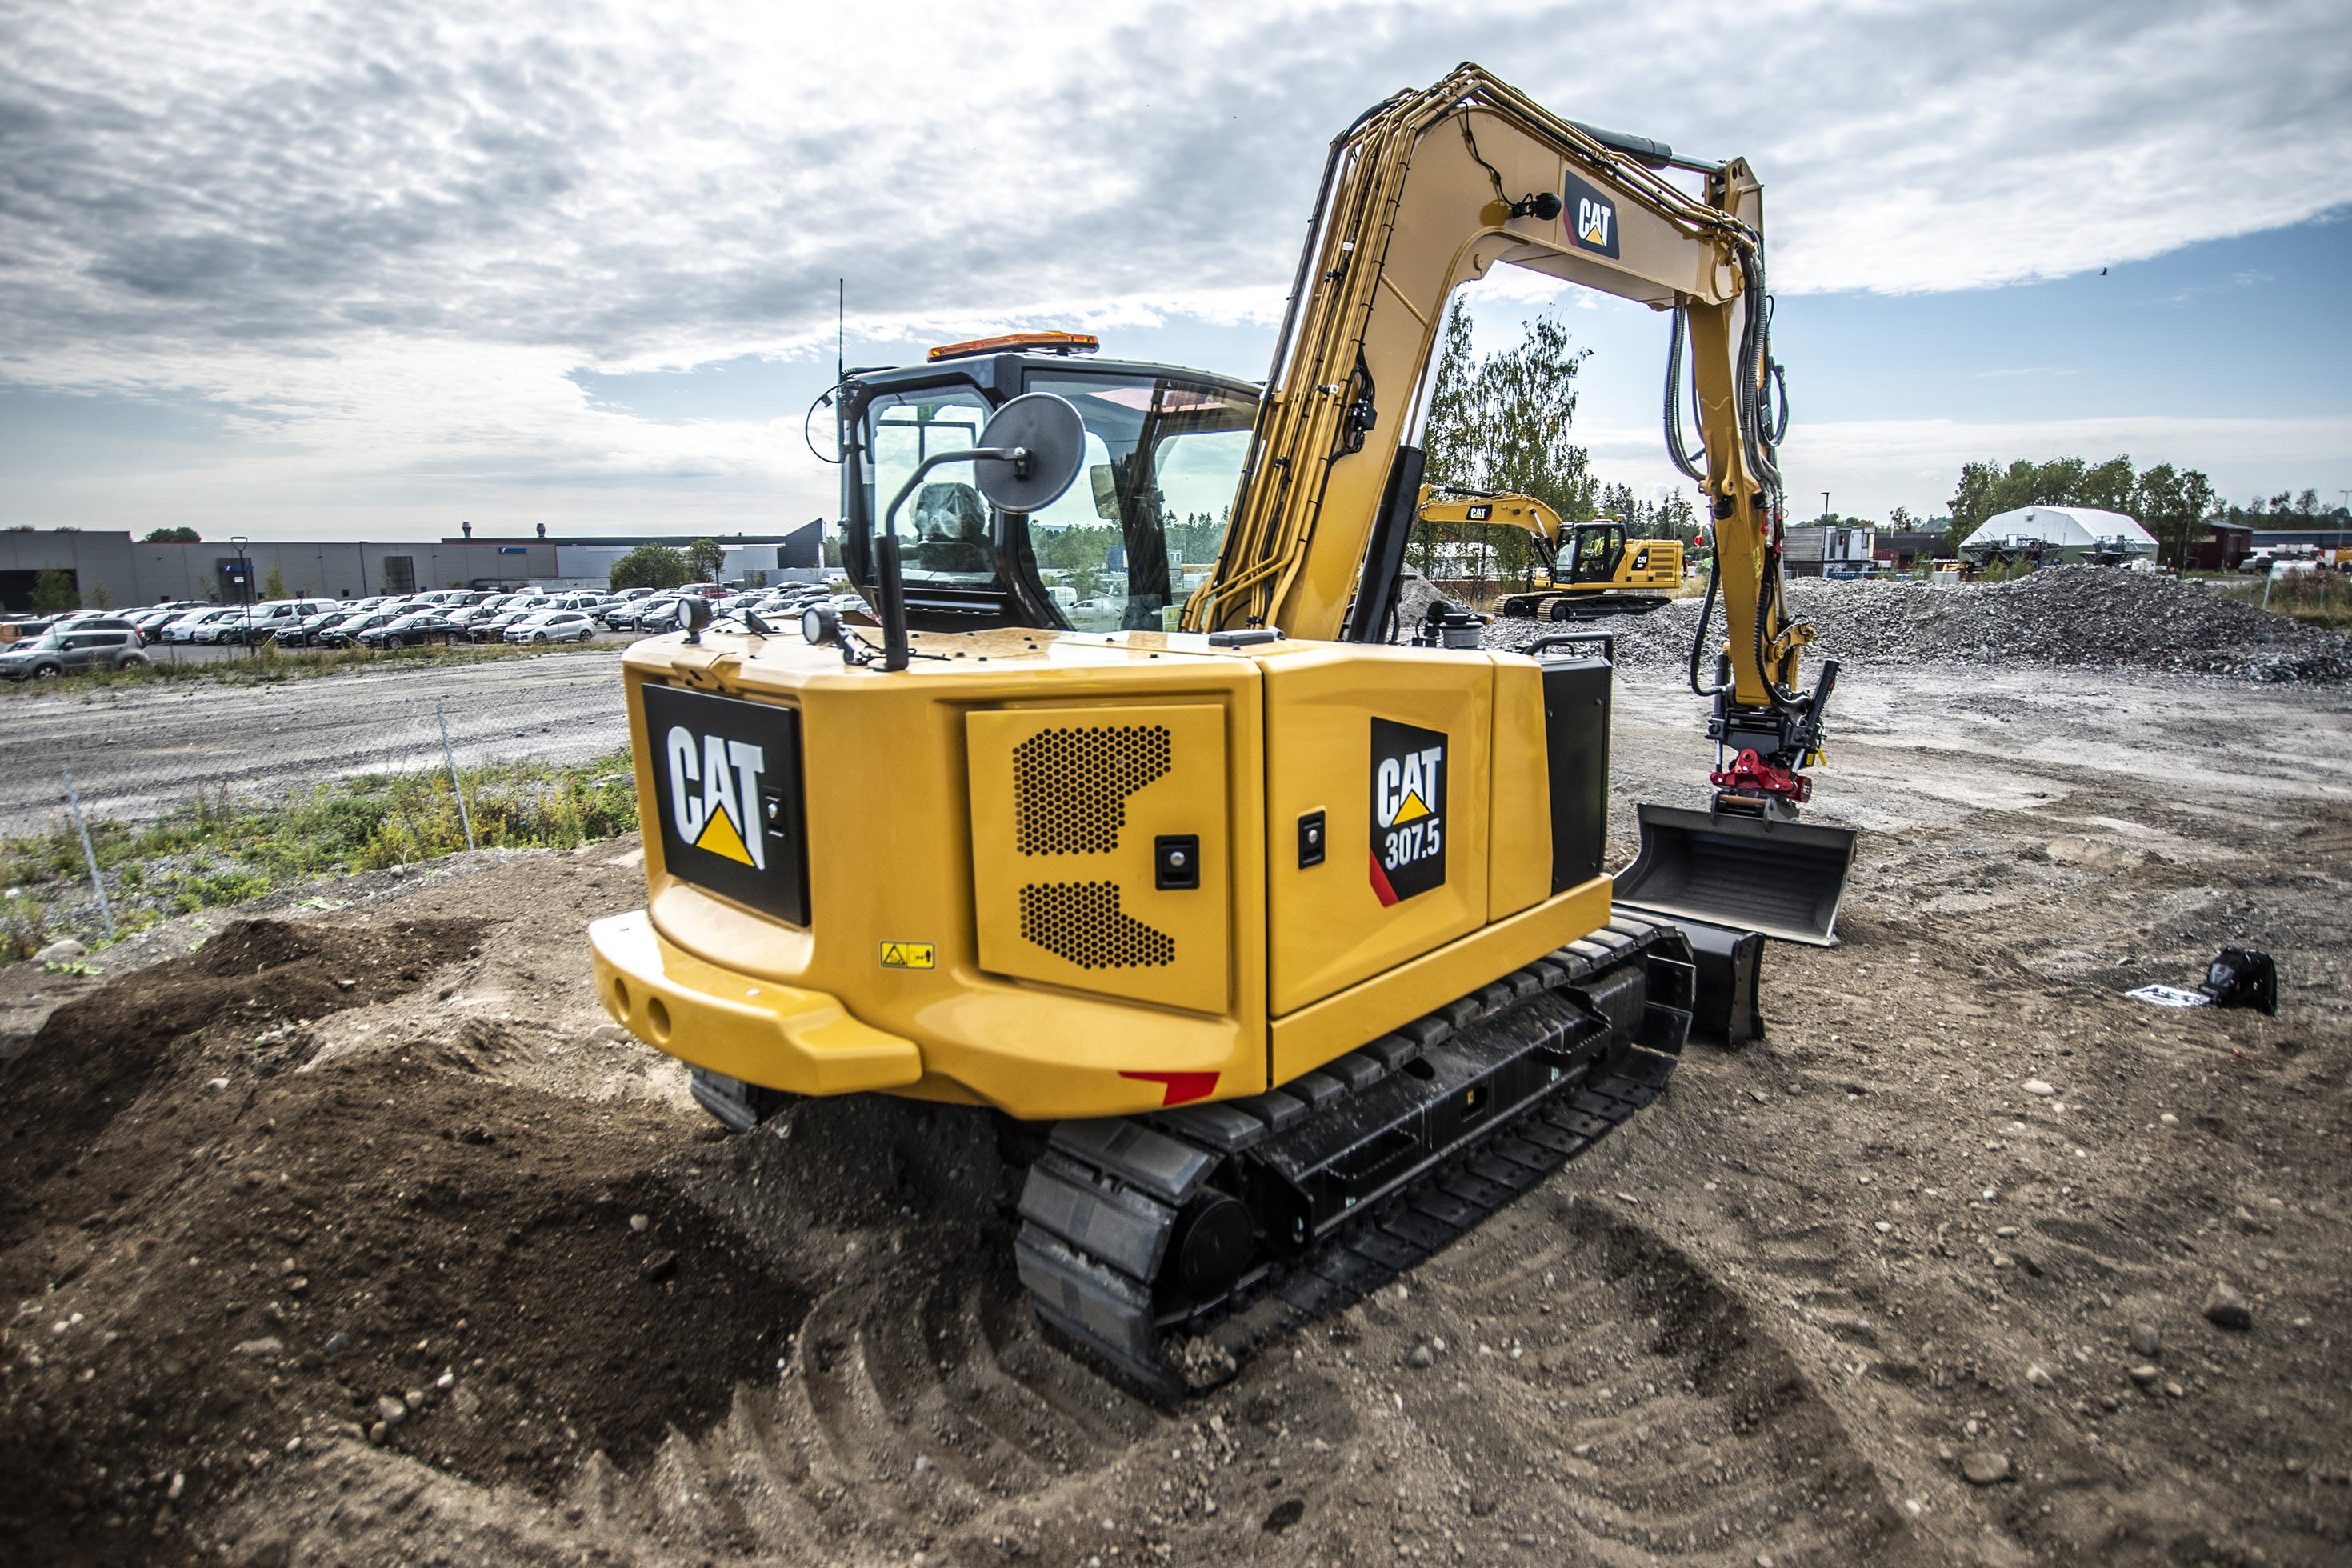 CAT 307.5 Next Generation